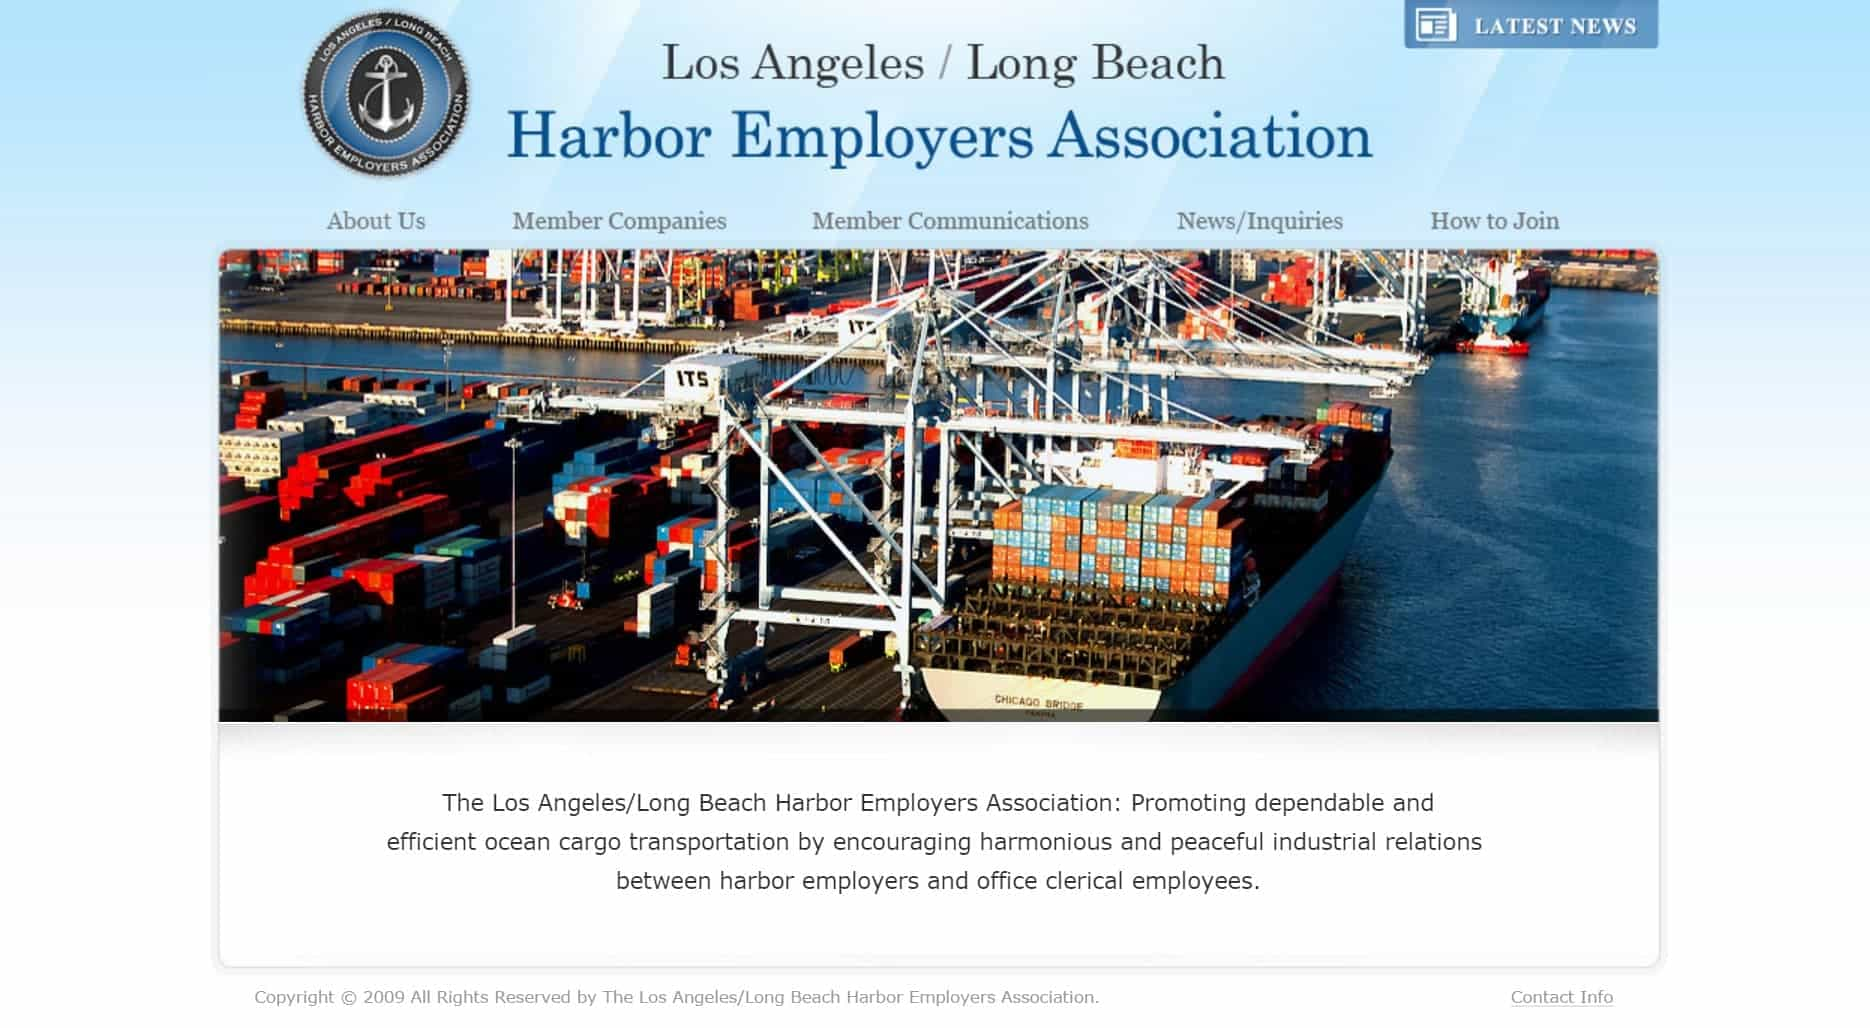 Harbor Employers Association